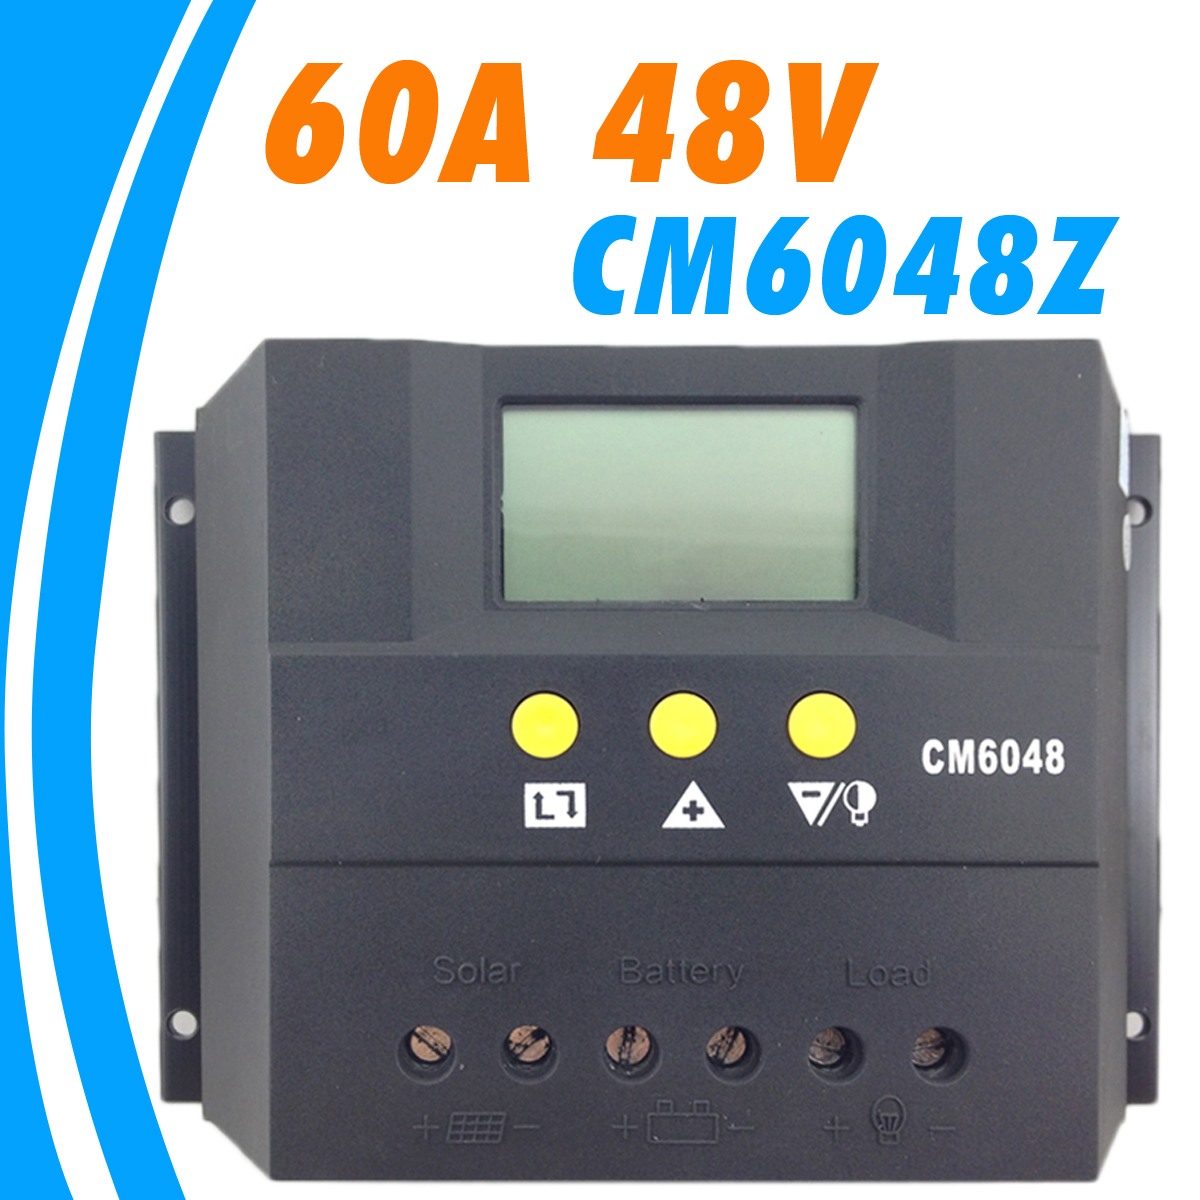 Cm6048z 60a 48v Solar Charge Controller Lcd Display Digital Pwm Missouri Wind And